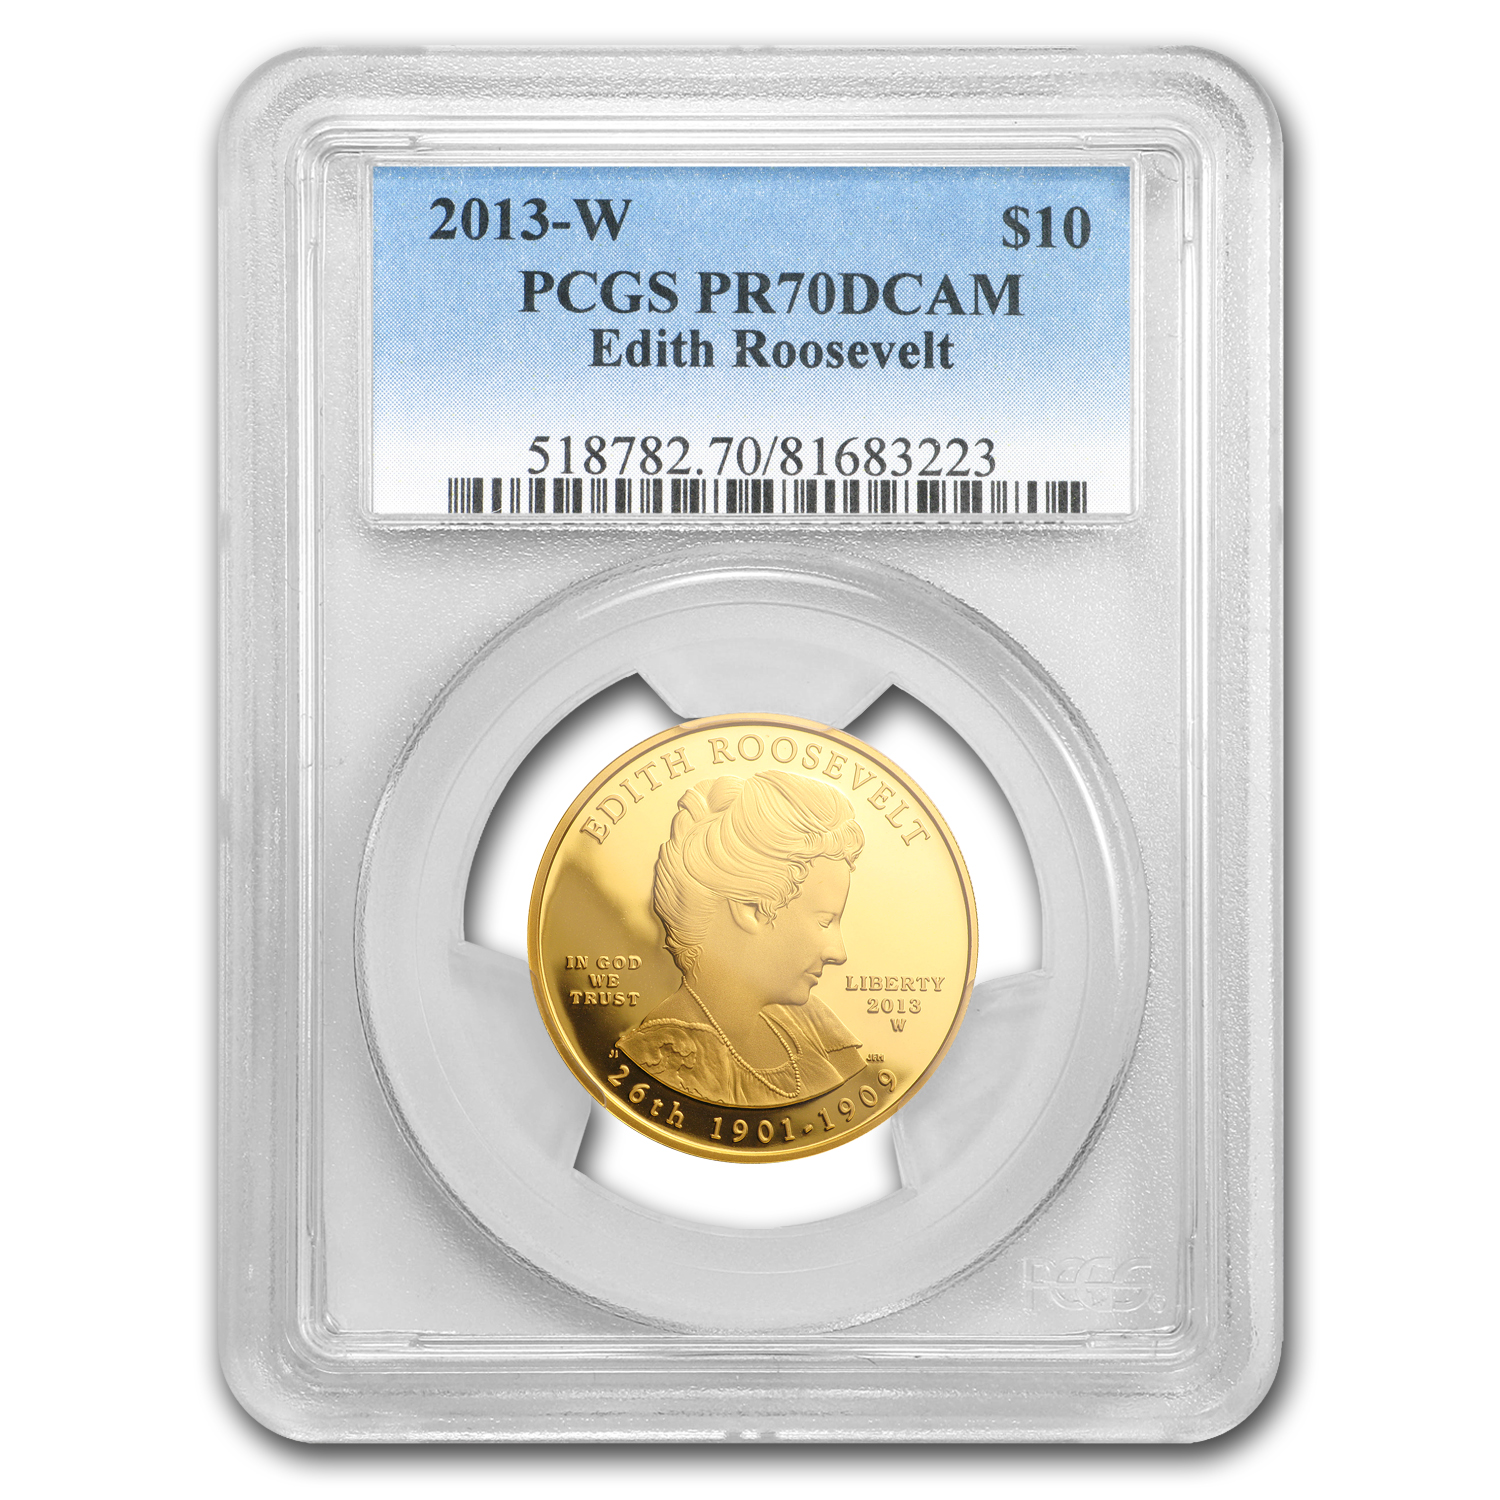 2013-W 1/2 oz Proof Gold Edith Roosevelt PR-70 PCGS